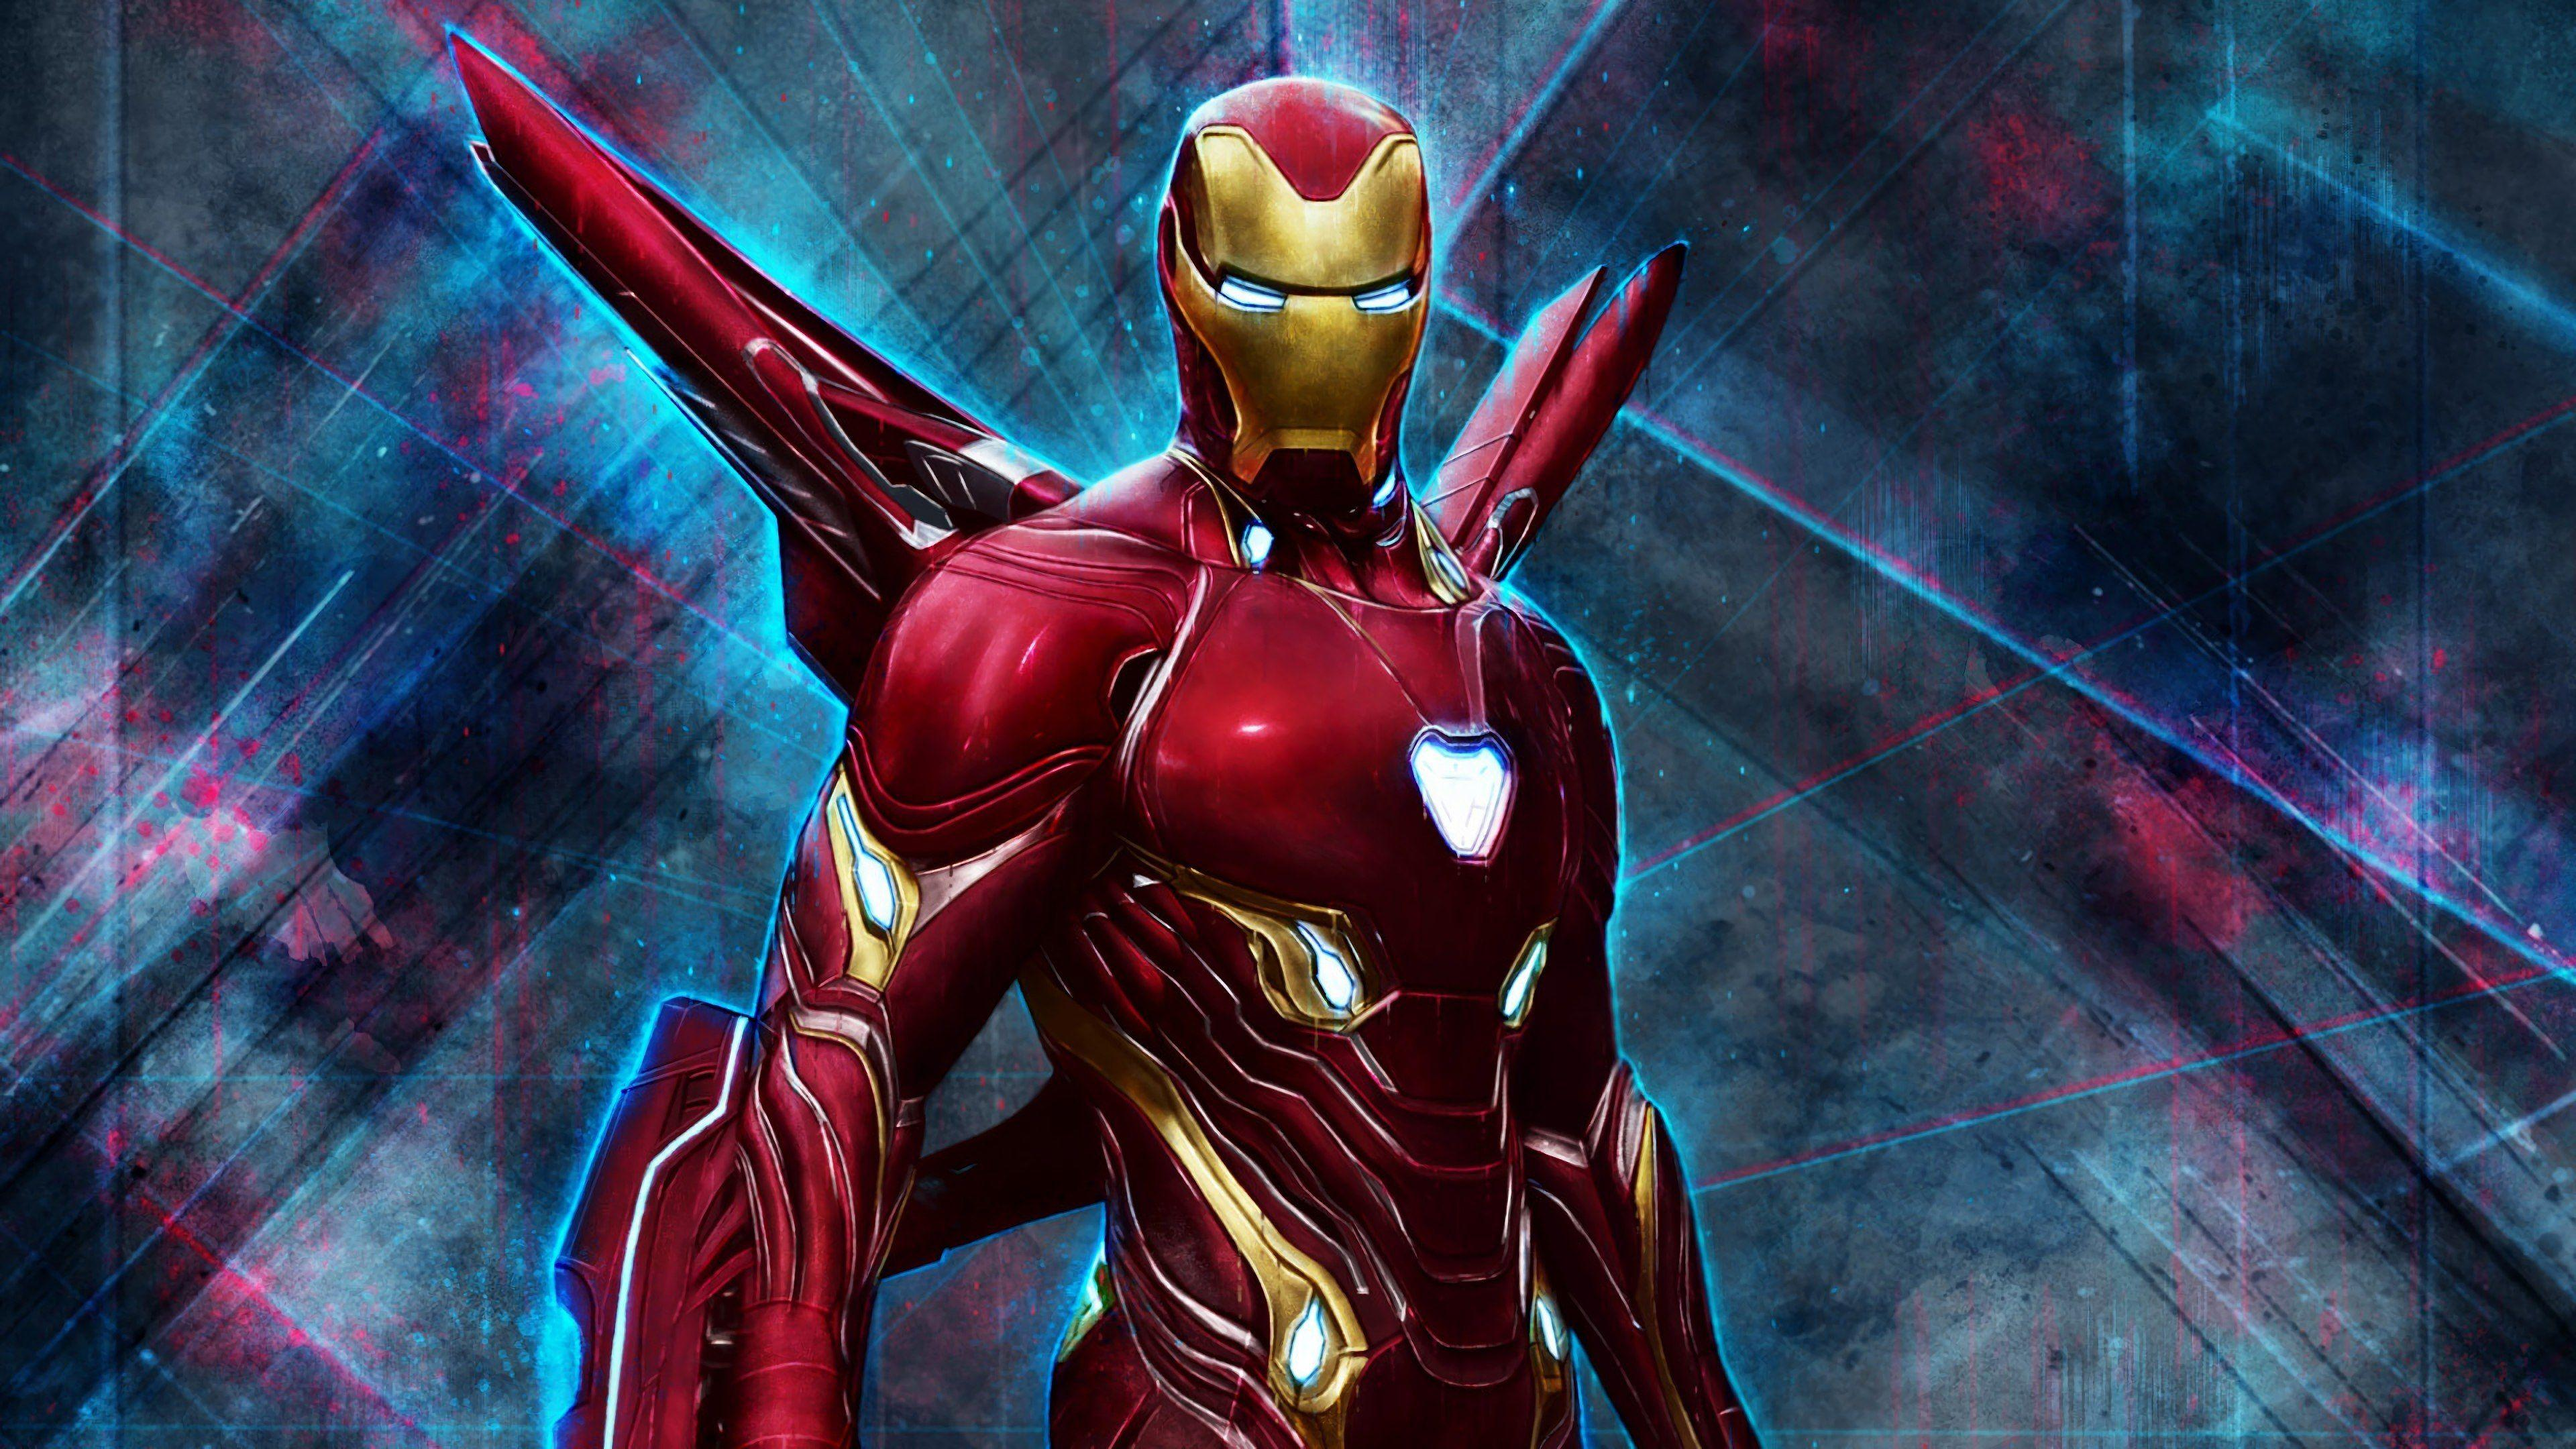 Infinity War Iron Man Wallpapers Wallpaper Cave